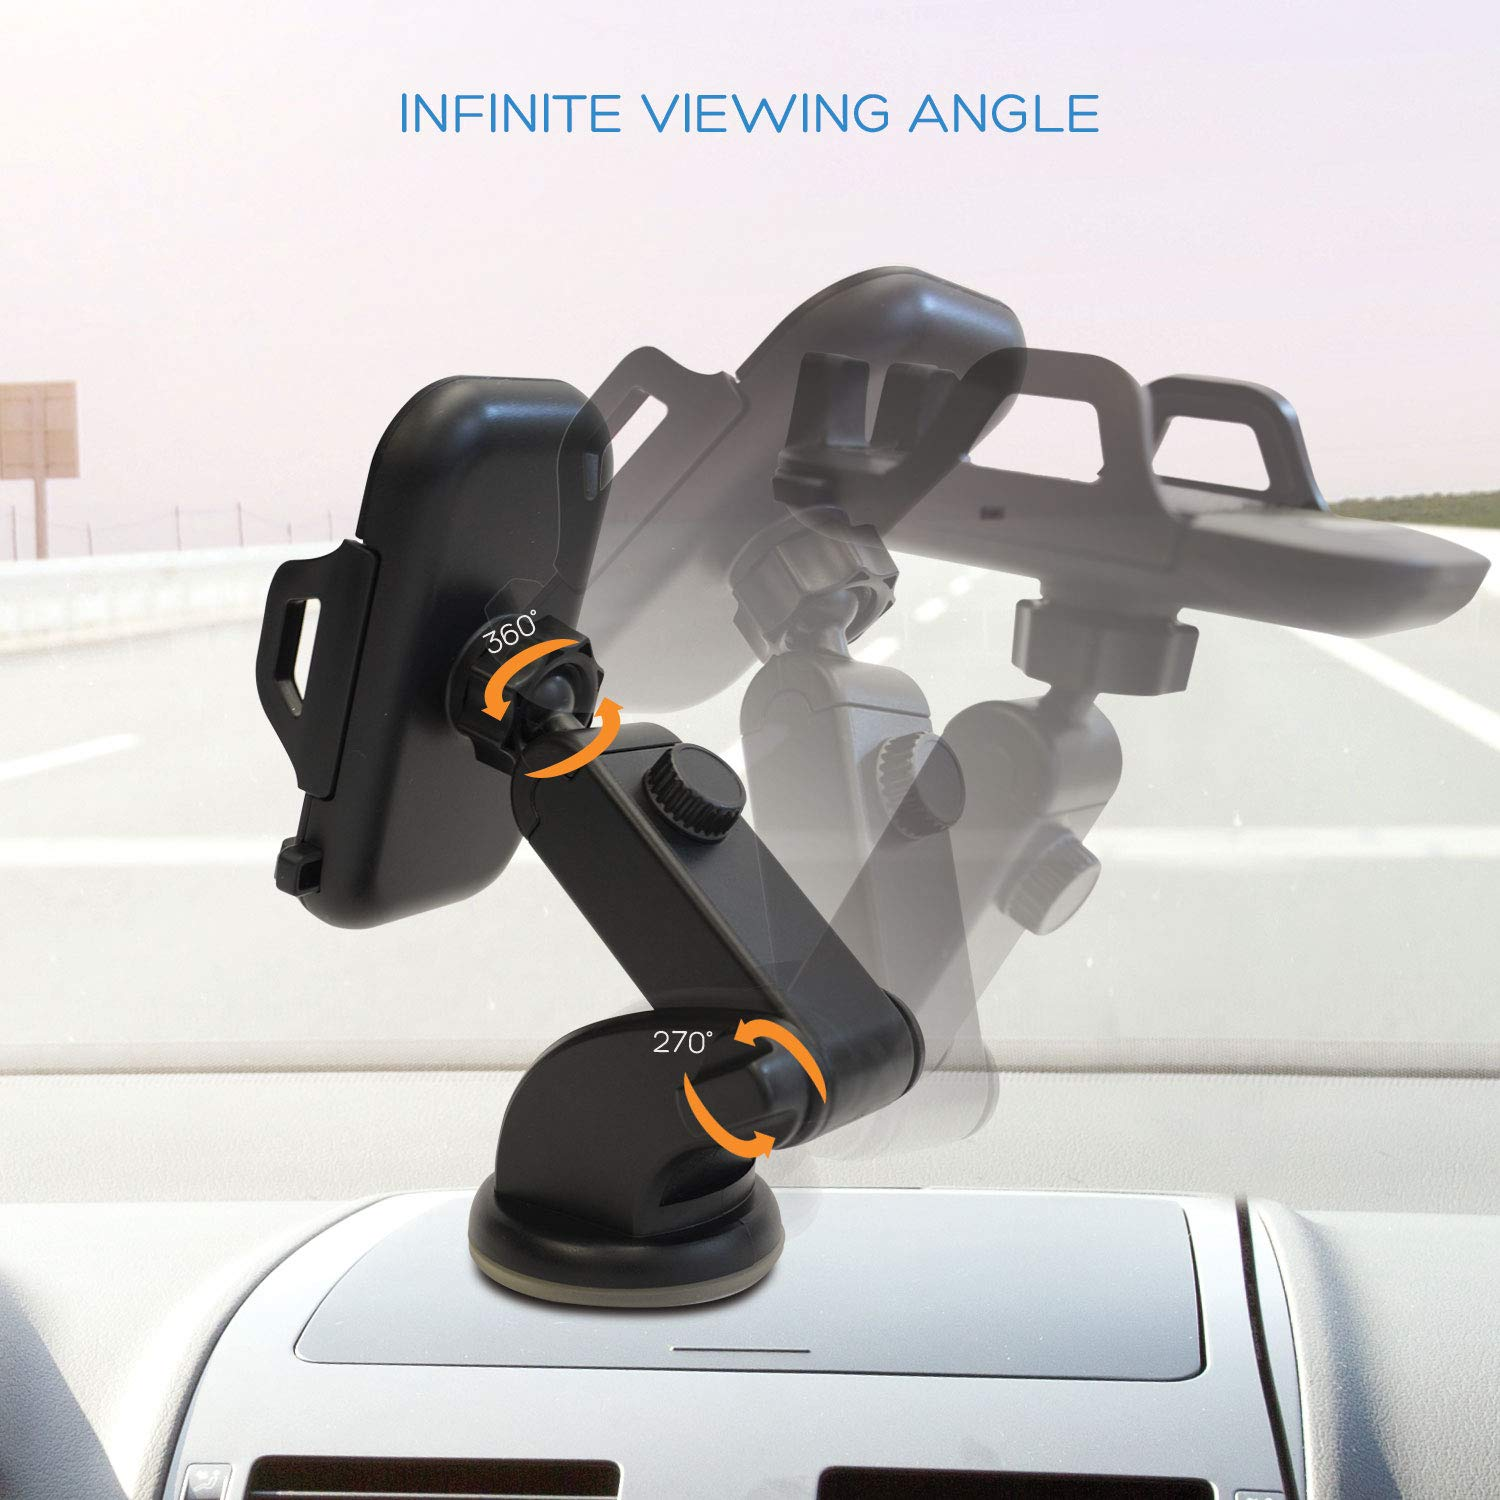 Dashboard Cell Phone Holder,Phone Holder,Windshield Phone Mount,Strong Suction Cup,Telescopic Arm,Car Phone Mount,Car Phone Holder,Car Mount,Car Holder,Car Cell Phone Holder for Smartphones and JPS